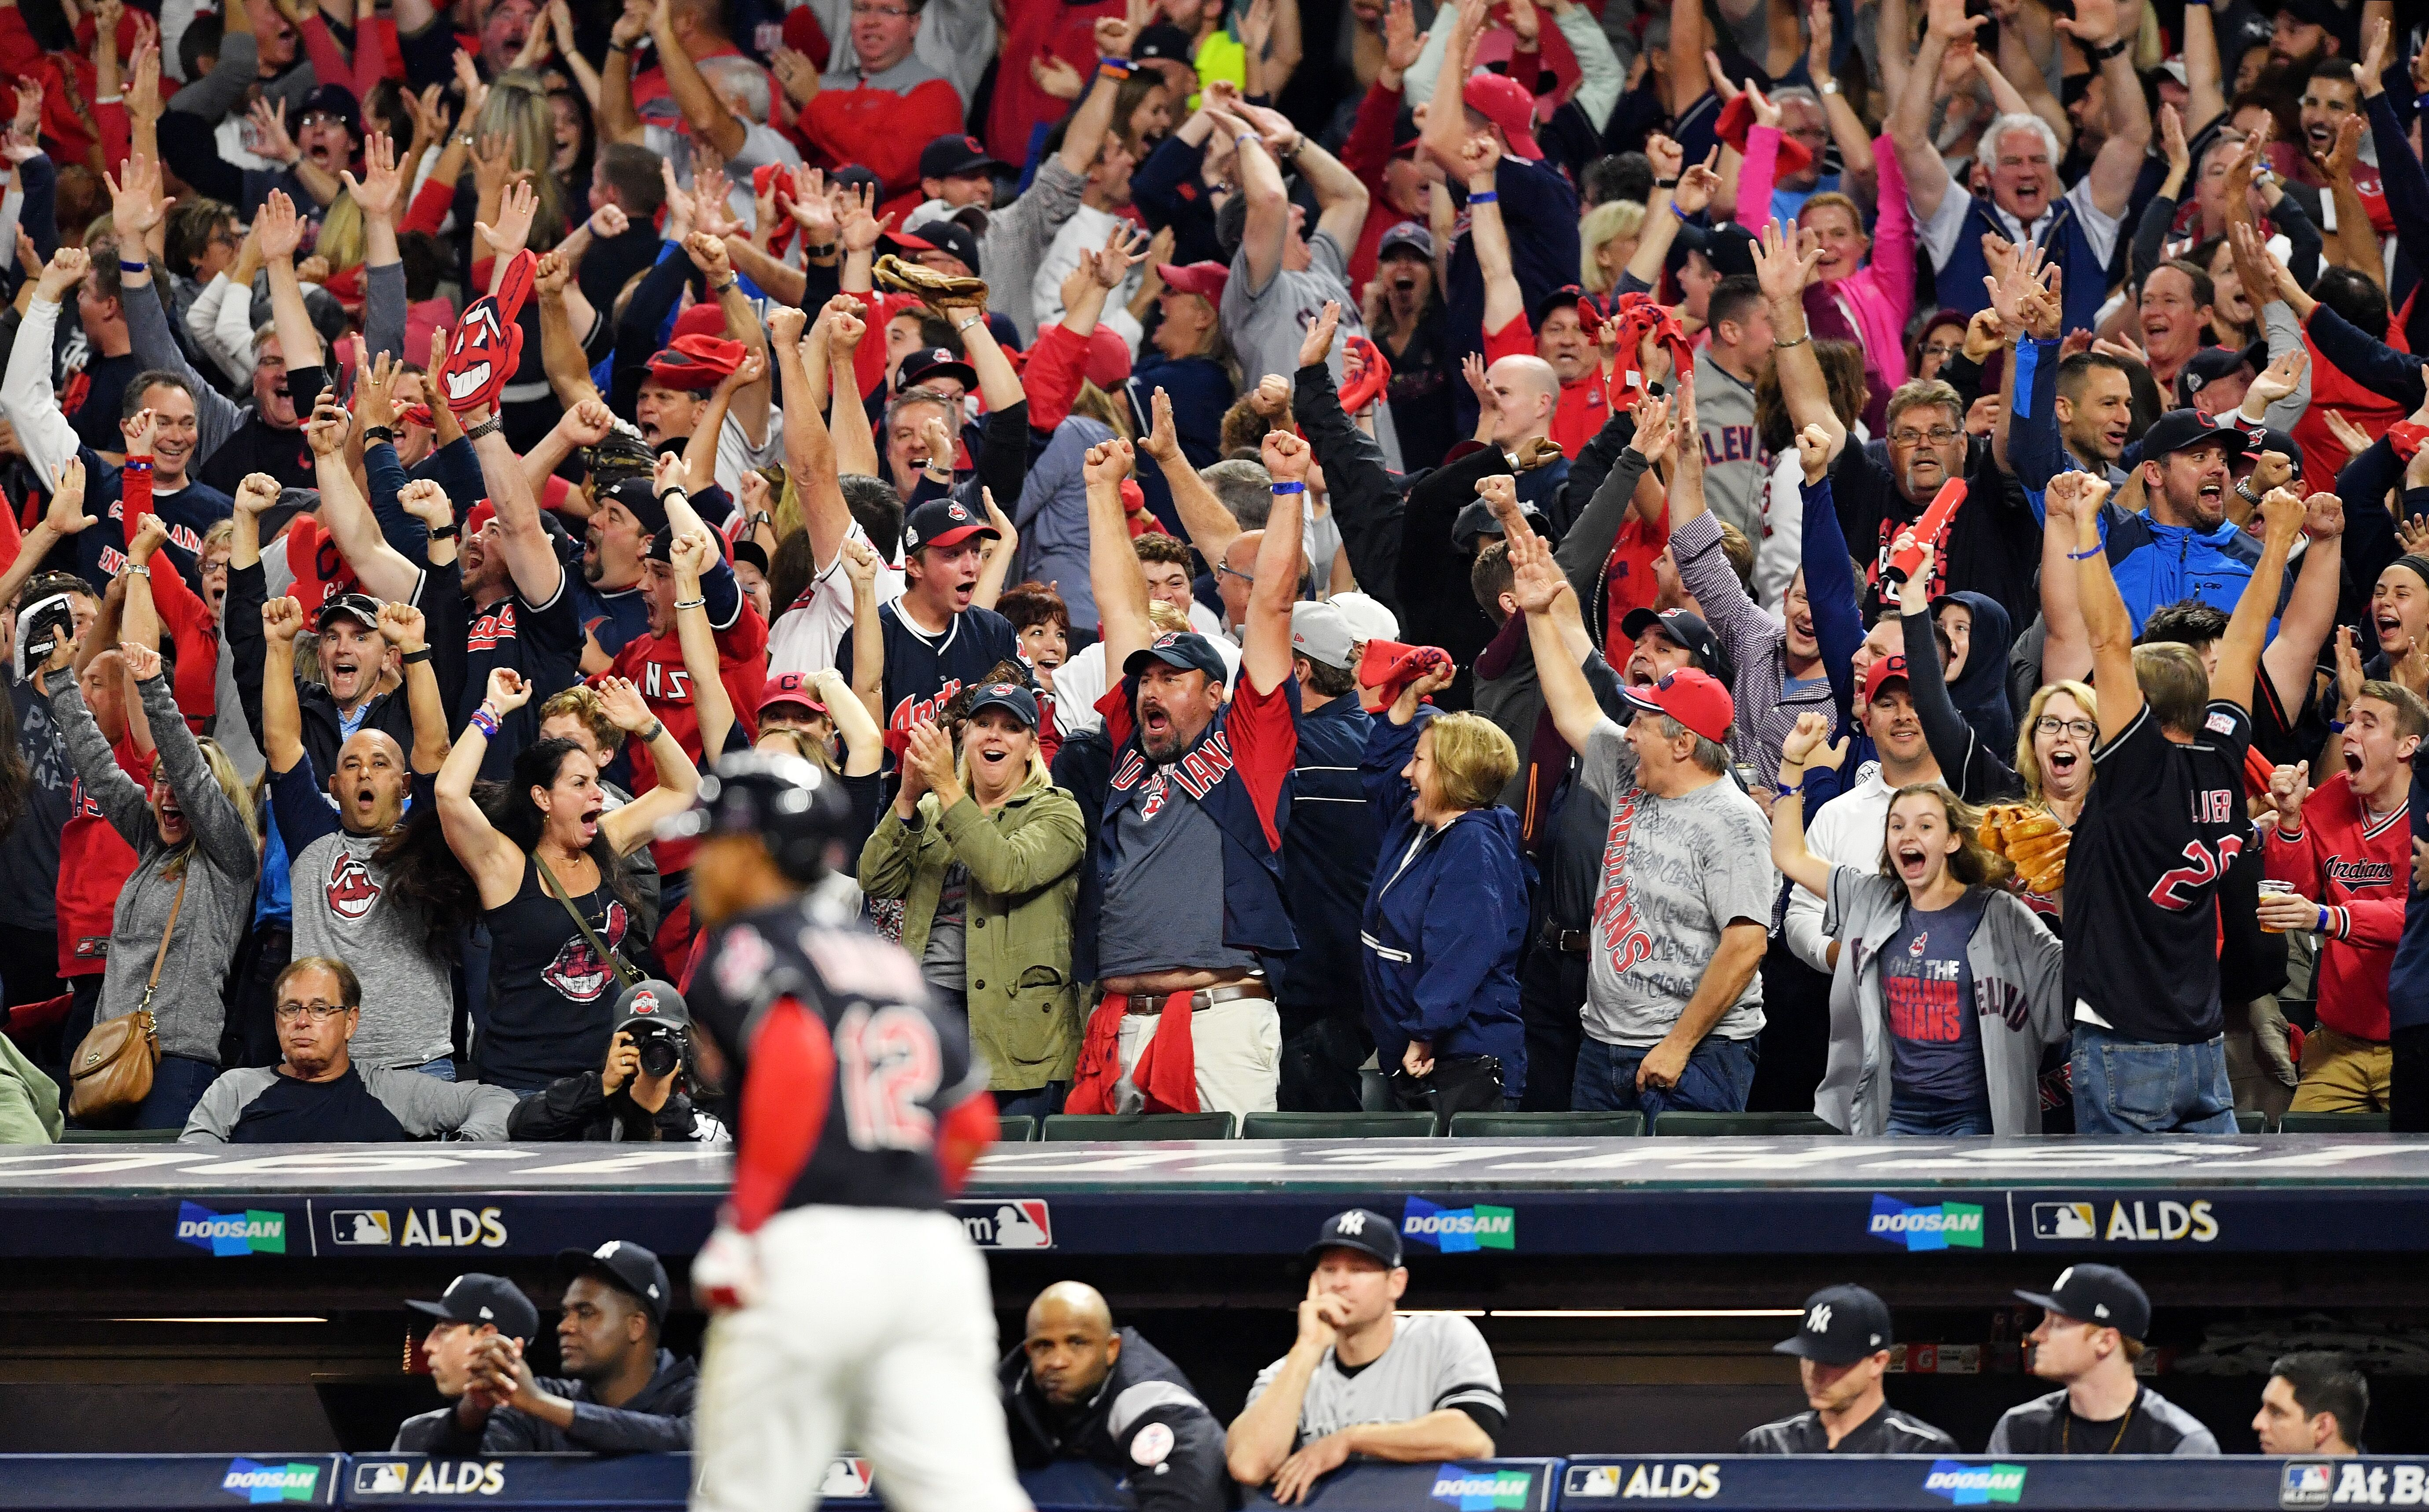 858456190-divisional-round-new-york-yankees-v-cleveland-indians-game-two.jpg